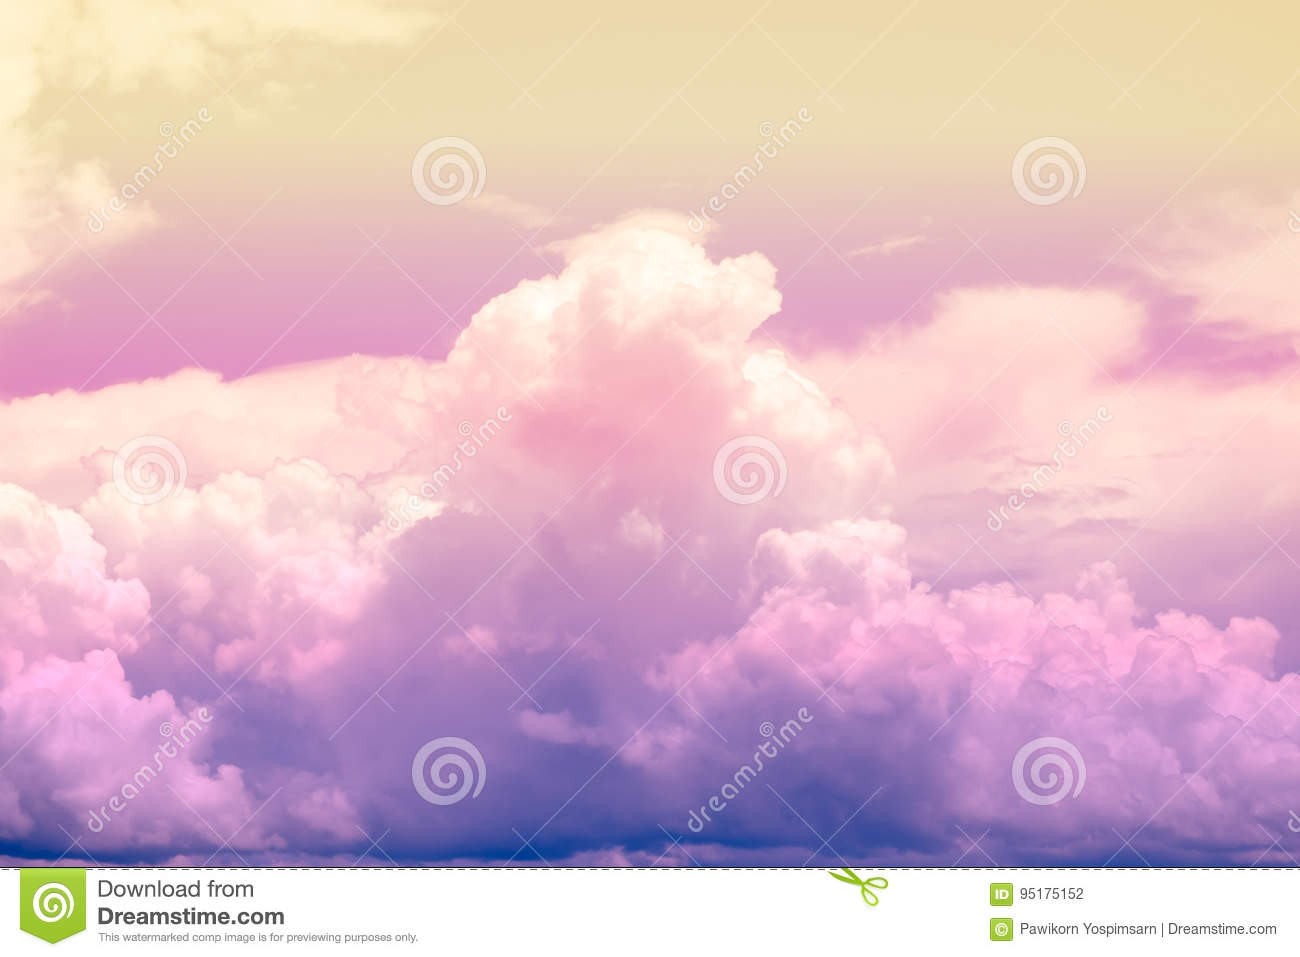 Colourful Fantasy Cloud Backgrounds: Colorful Soft Cloud And Sky For Background Stock Photo